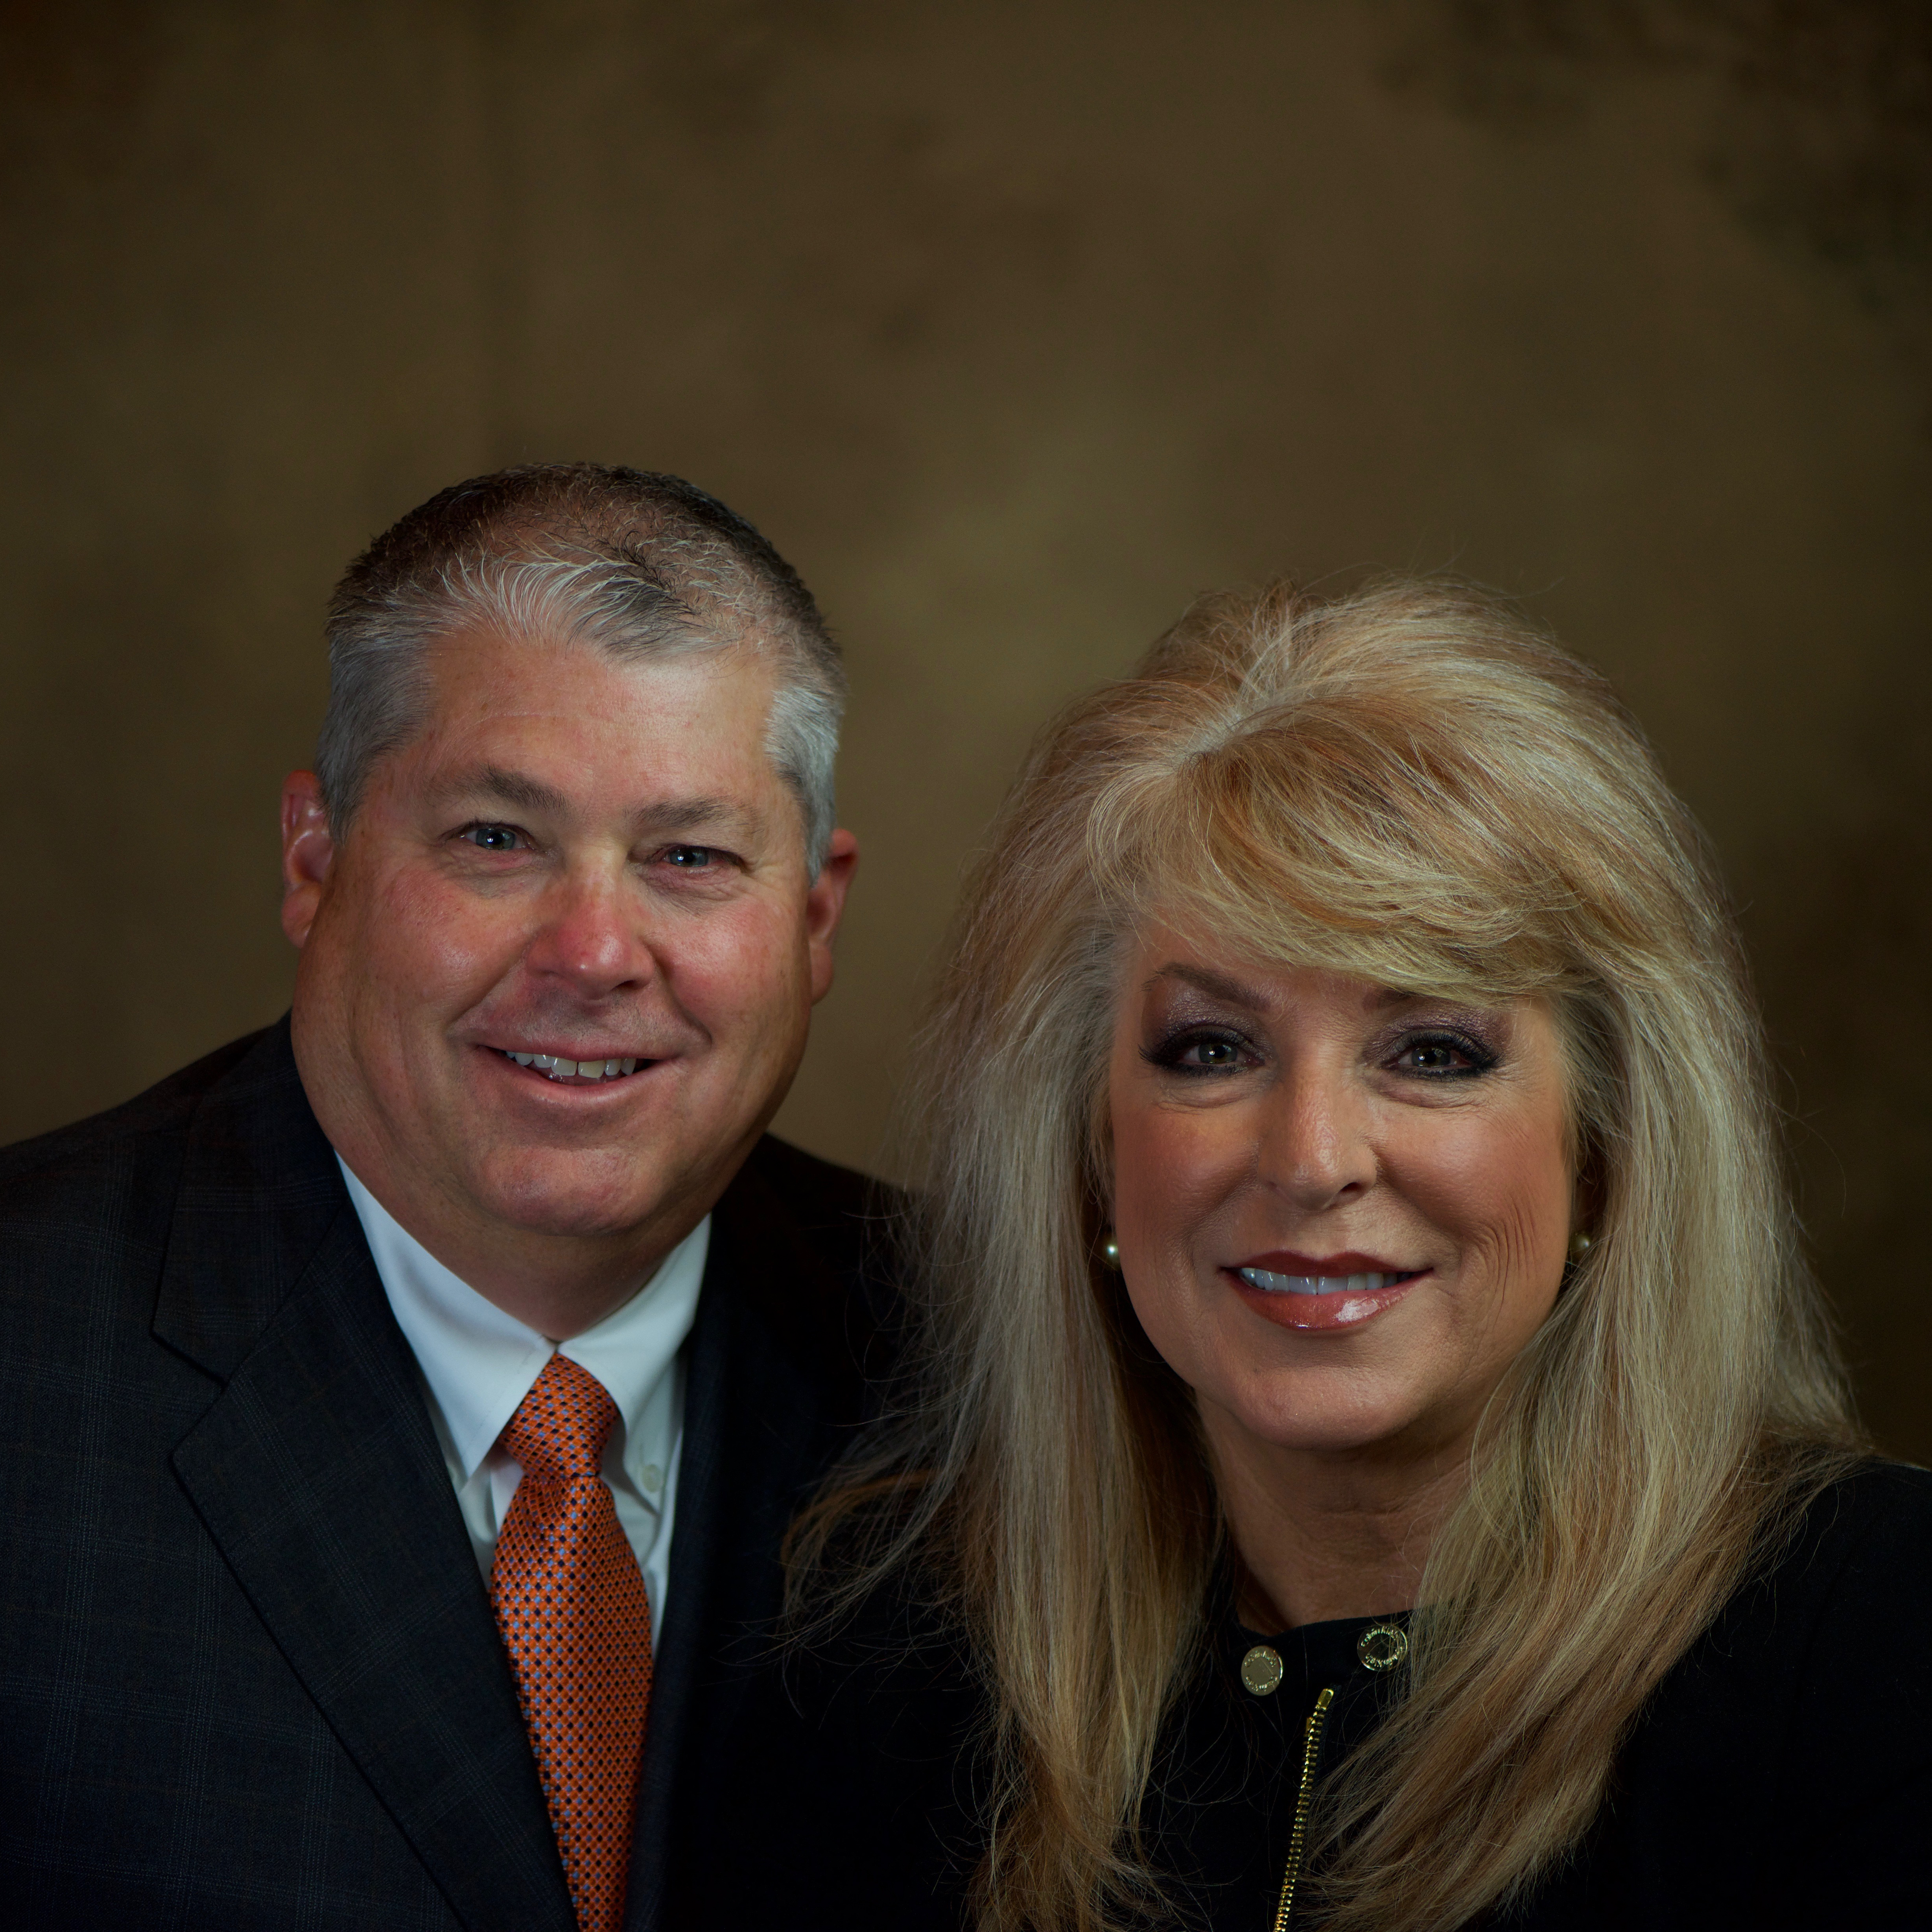 David and Michelle Hollingsworth